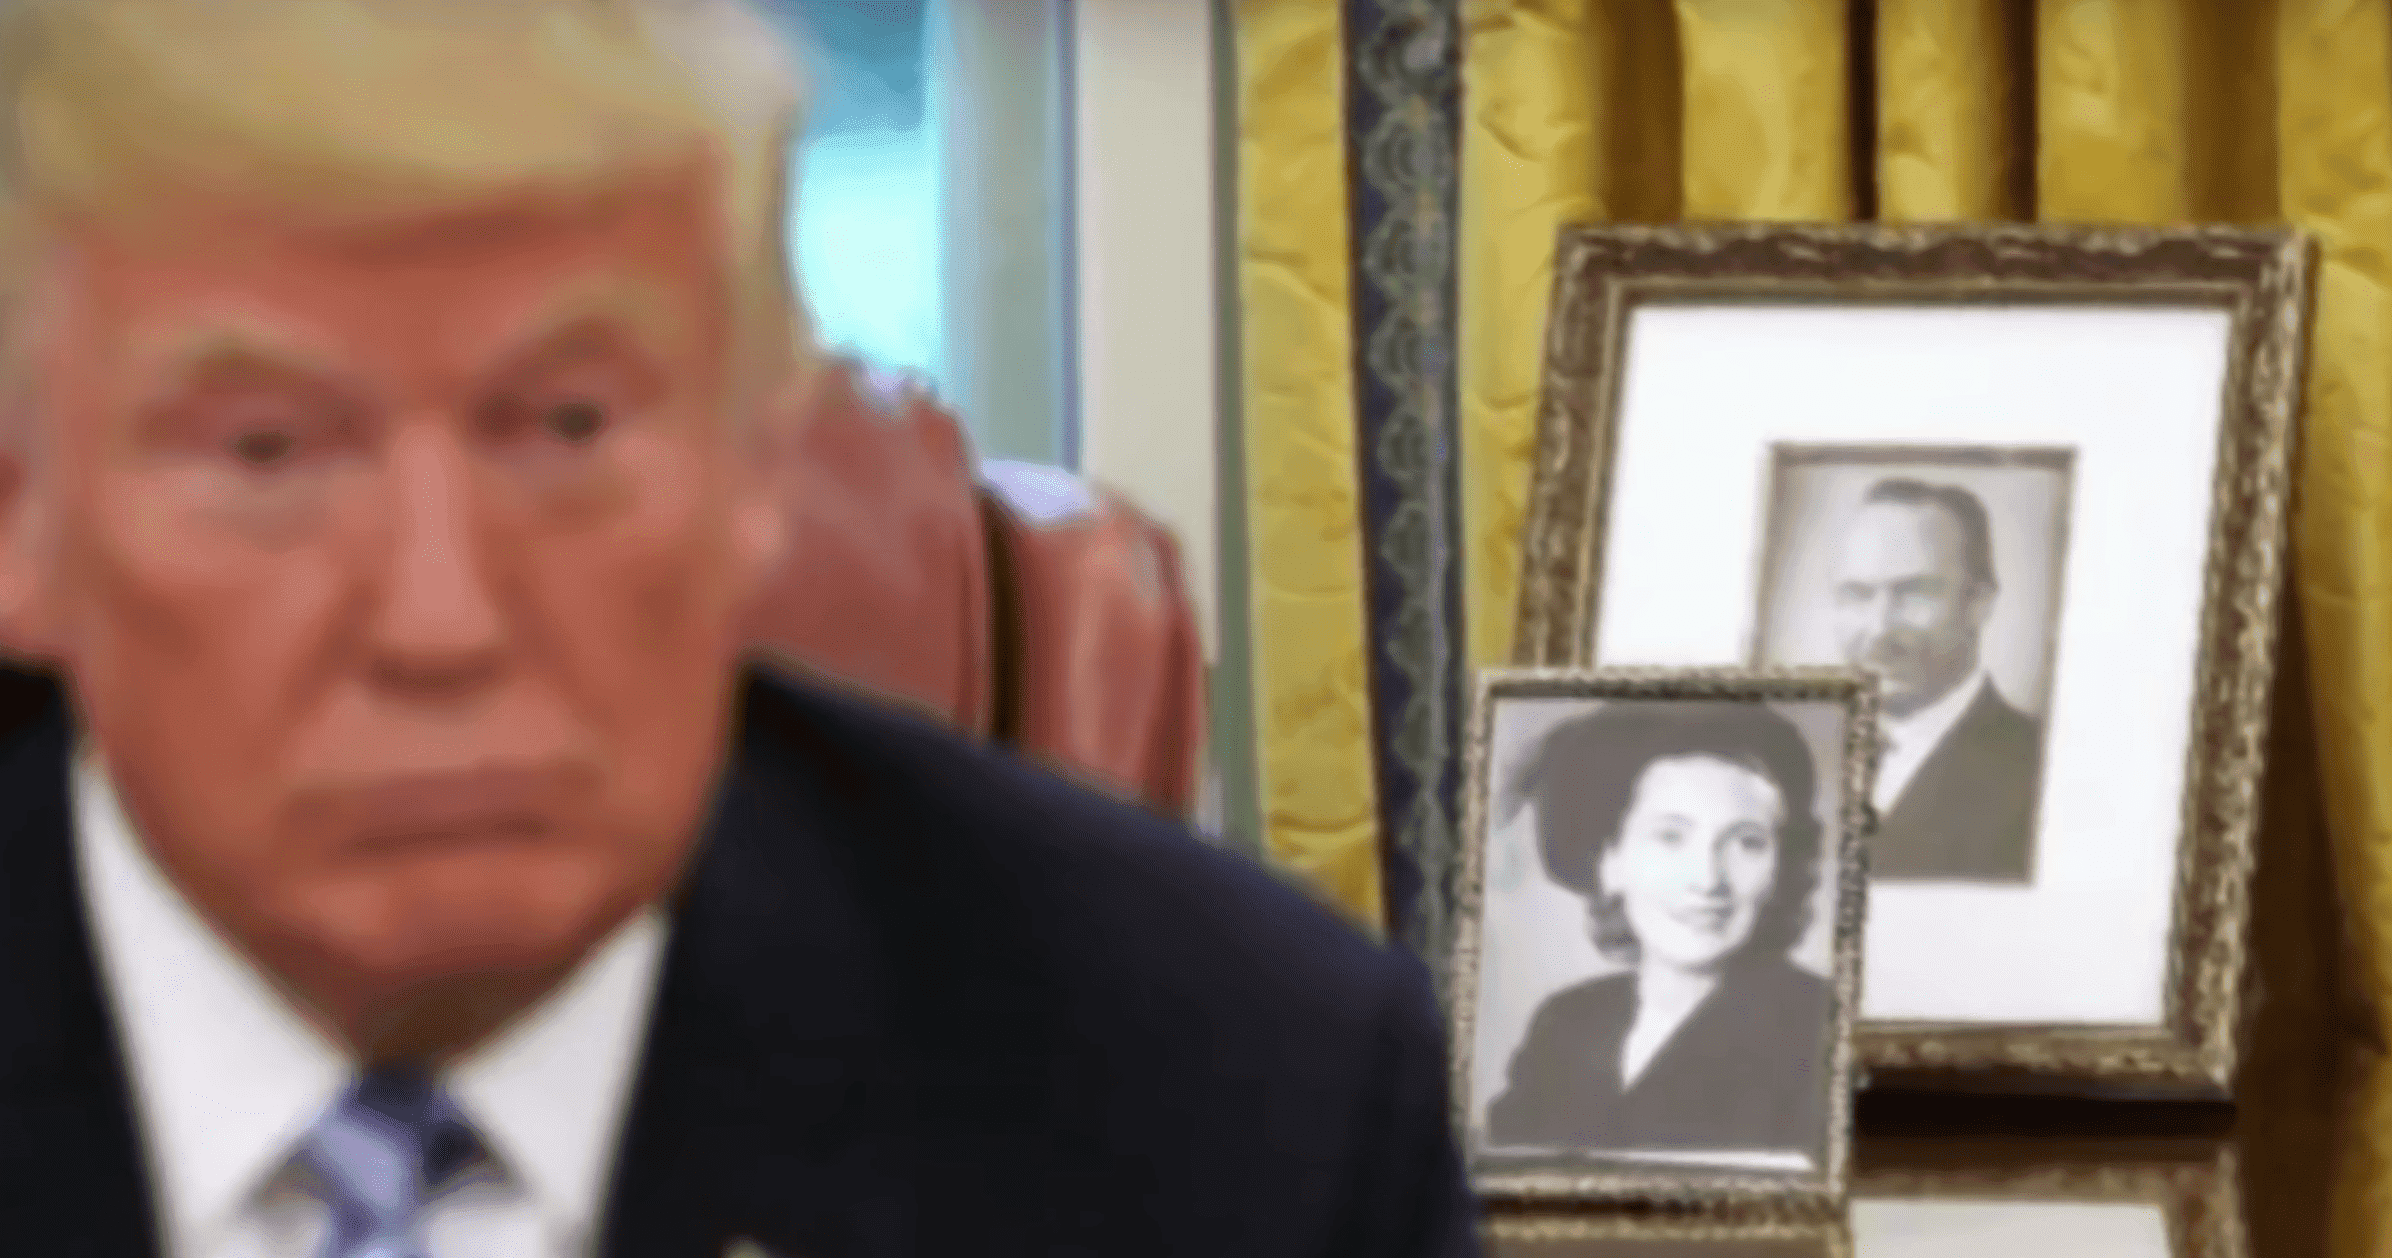 Mary und Freds Porträts im Oval Office | Quelle: YouTube/InsideEdition